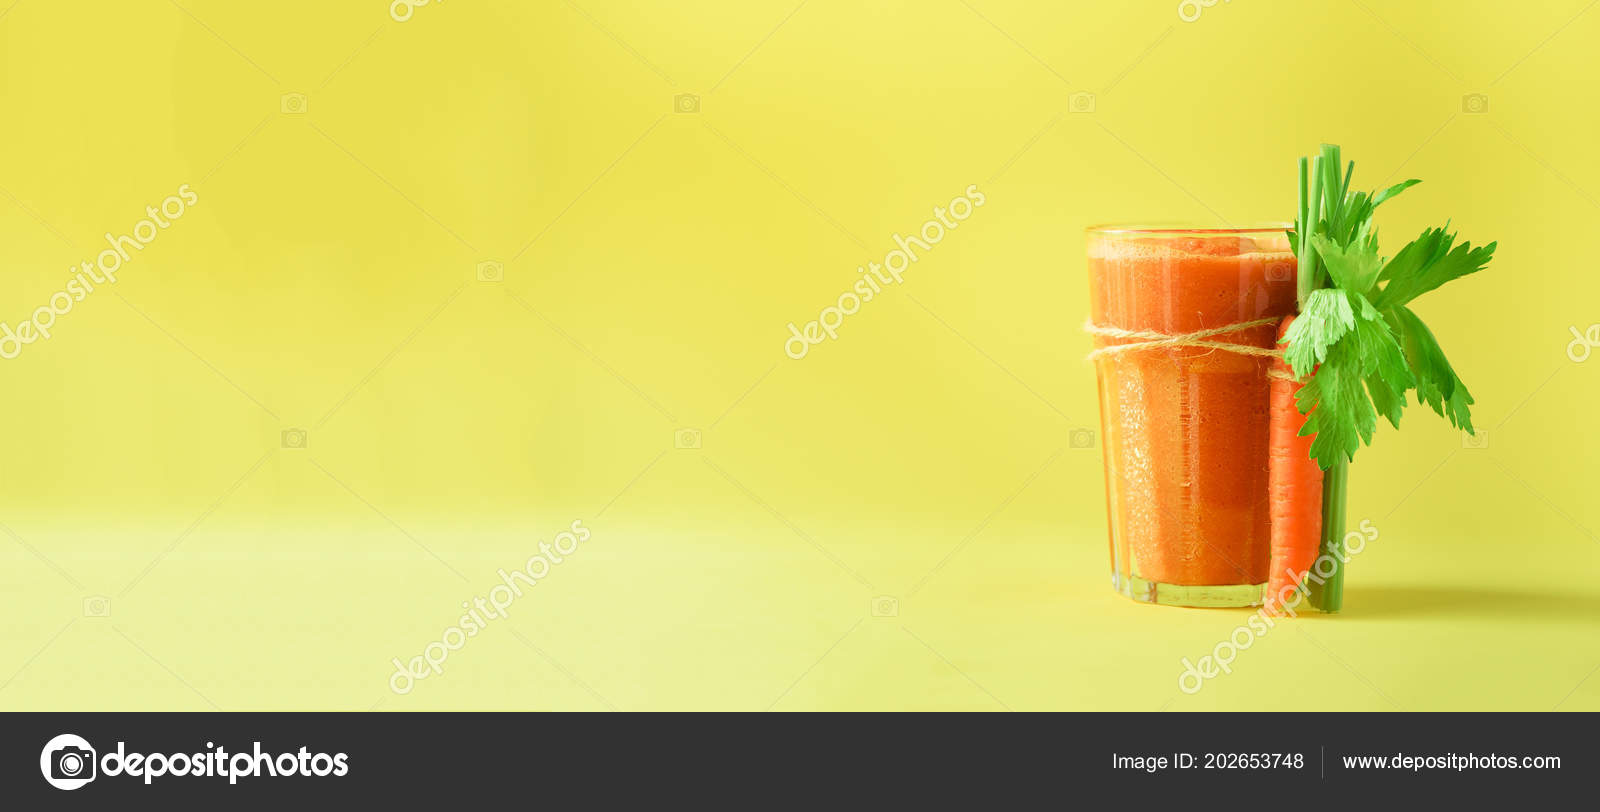 Organic Carrot Juice With Carrots Celery On Yellow Background Fresh Vegetable Smothie In Glass Banner Copy Space Summer Food Concept Healthy Detox Eating Alkaline Diet Stock Photo C J Chizhe 202653748